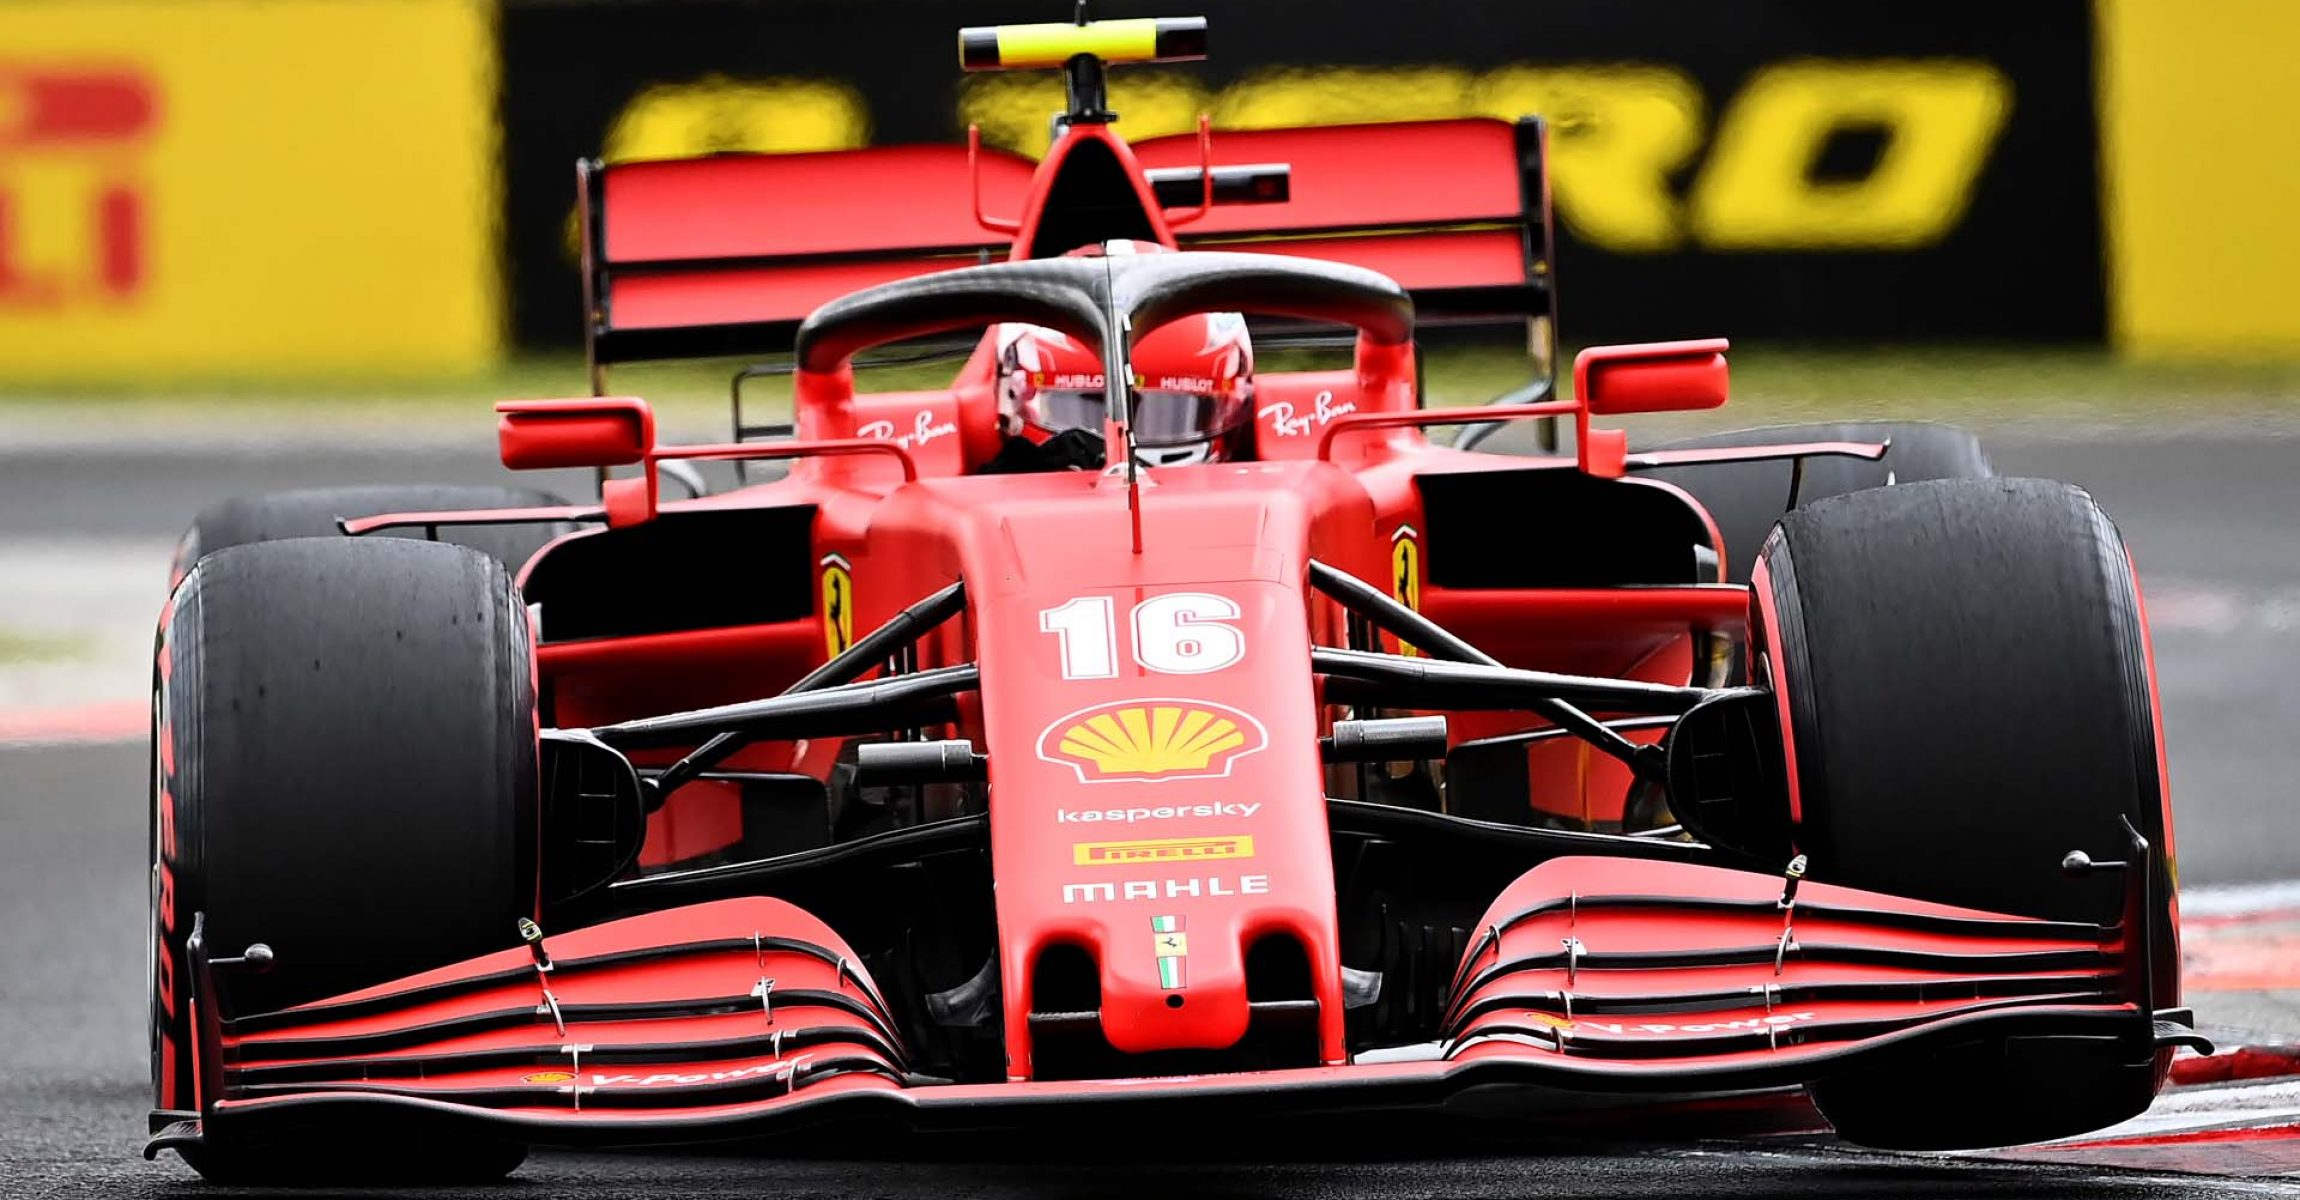 Ferrari's Monegasque driver Charles Leclerc steers his car during the qualifying session for the Formula One Hungarian Grand Prix at the Hungaroring circuit in Mogyorod near Budapest, Hungary, on July 18, 2020. (Photo by Joe Klamar / various sources / AFP)